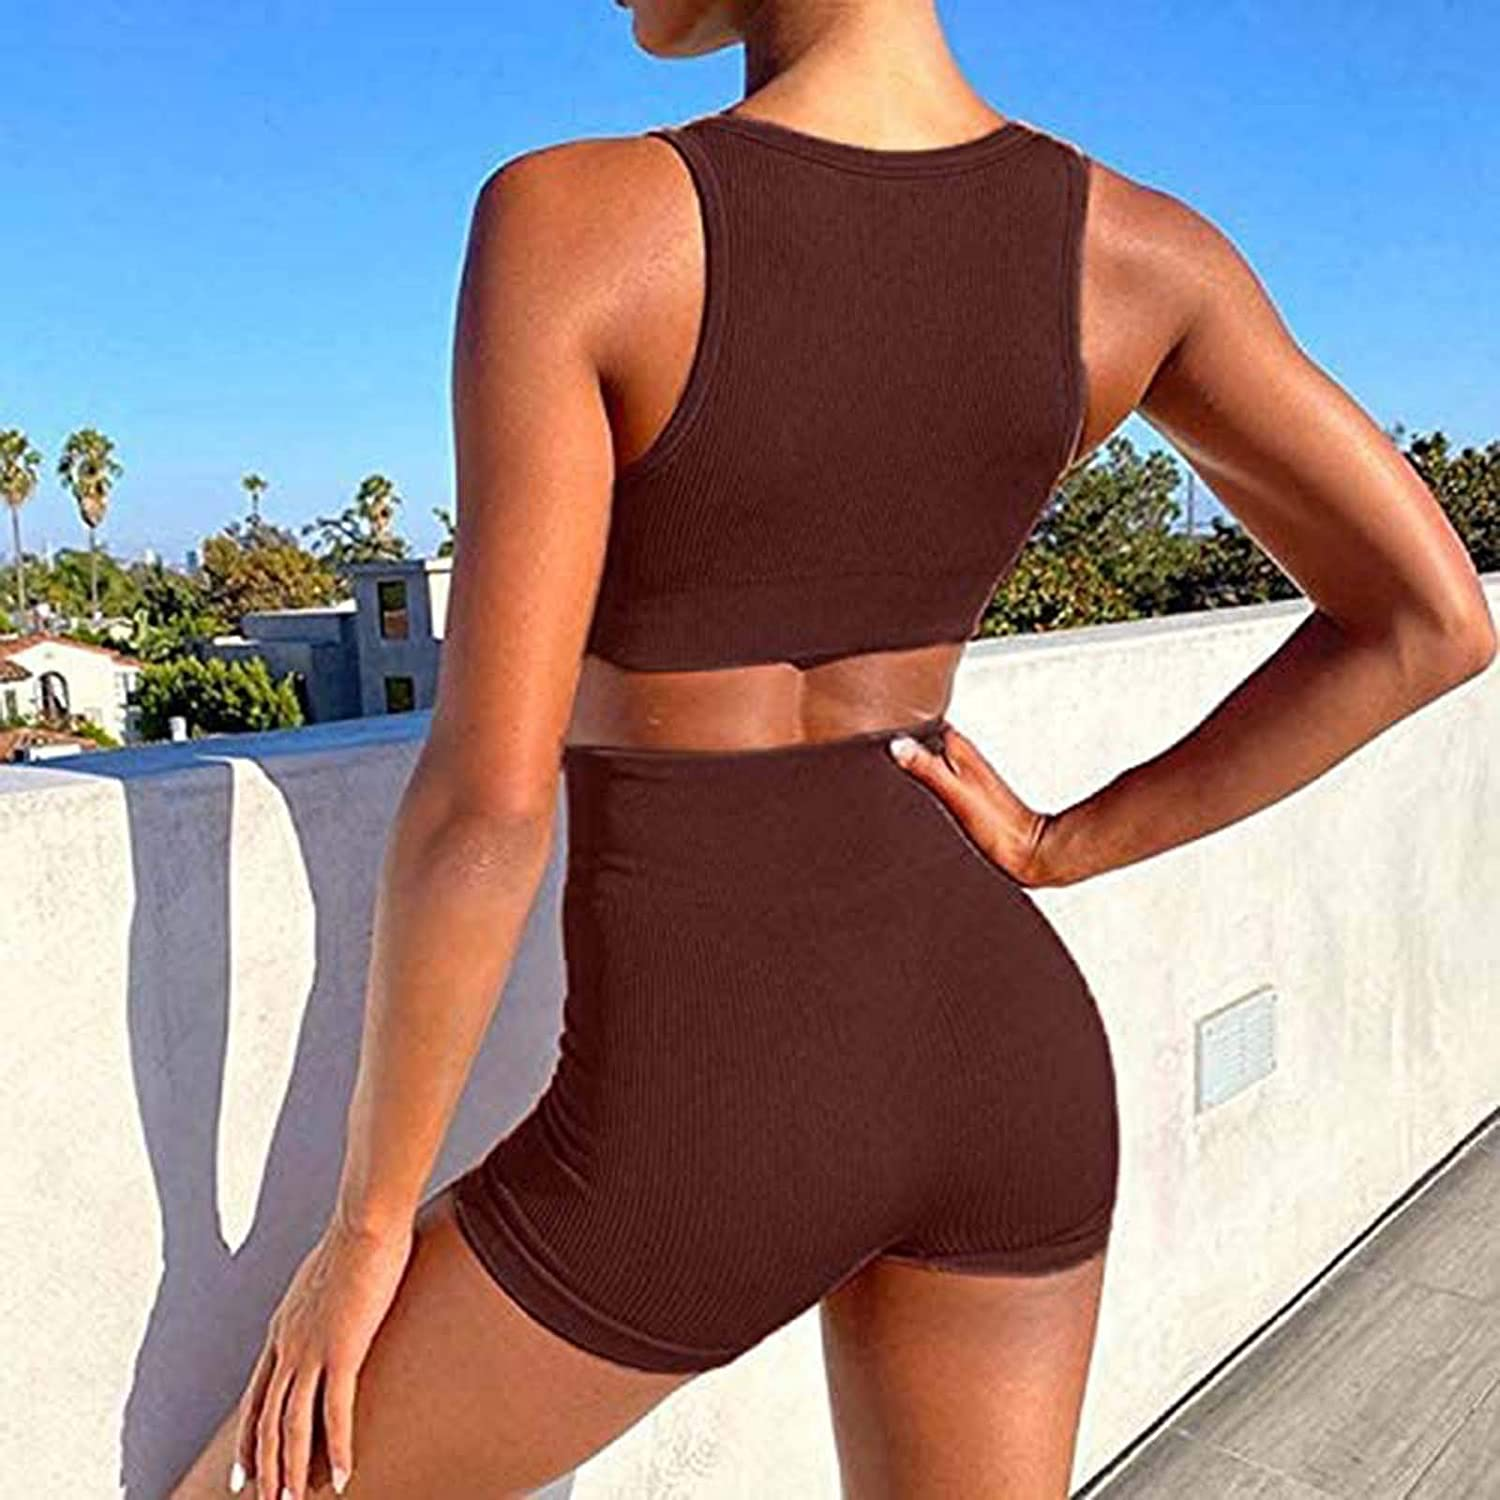 Nixiang Exercise Outfits for Women 2 Pieces Ribbed Seamless Yoga Outfits Sports Bra and Leggings Set Tracksuits 2 Piece